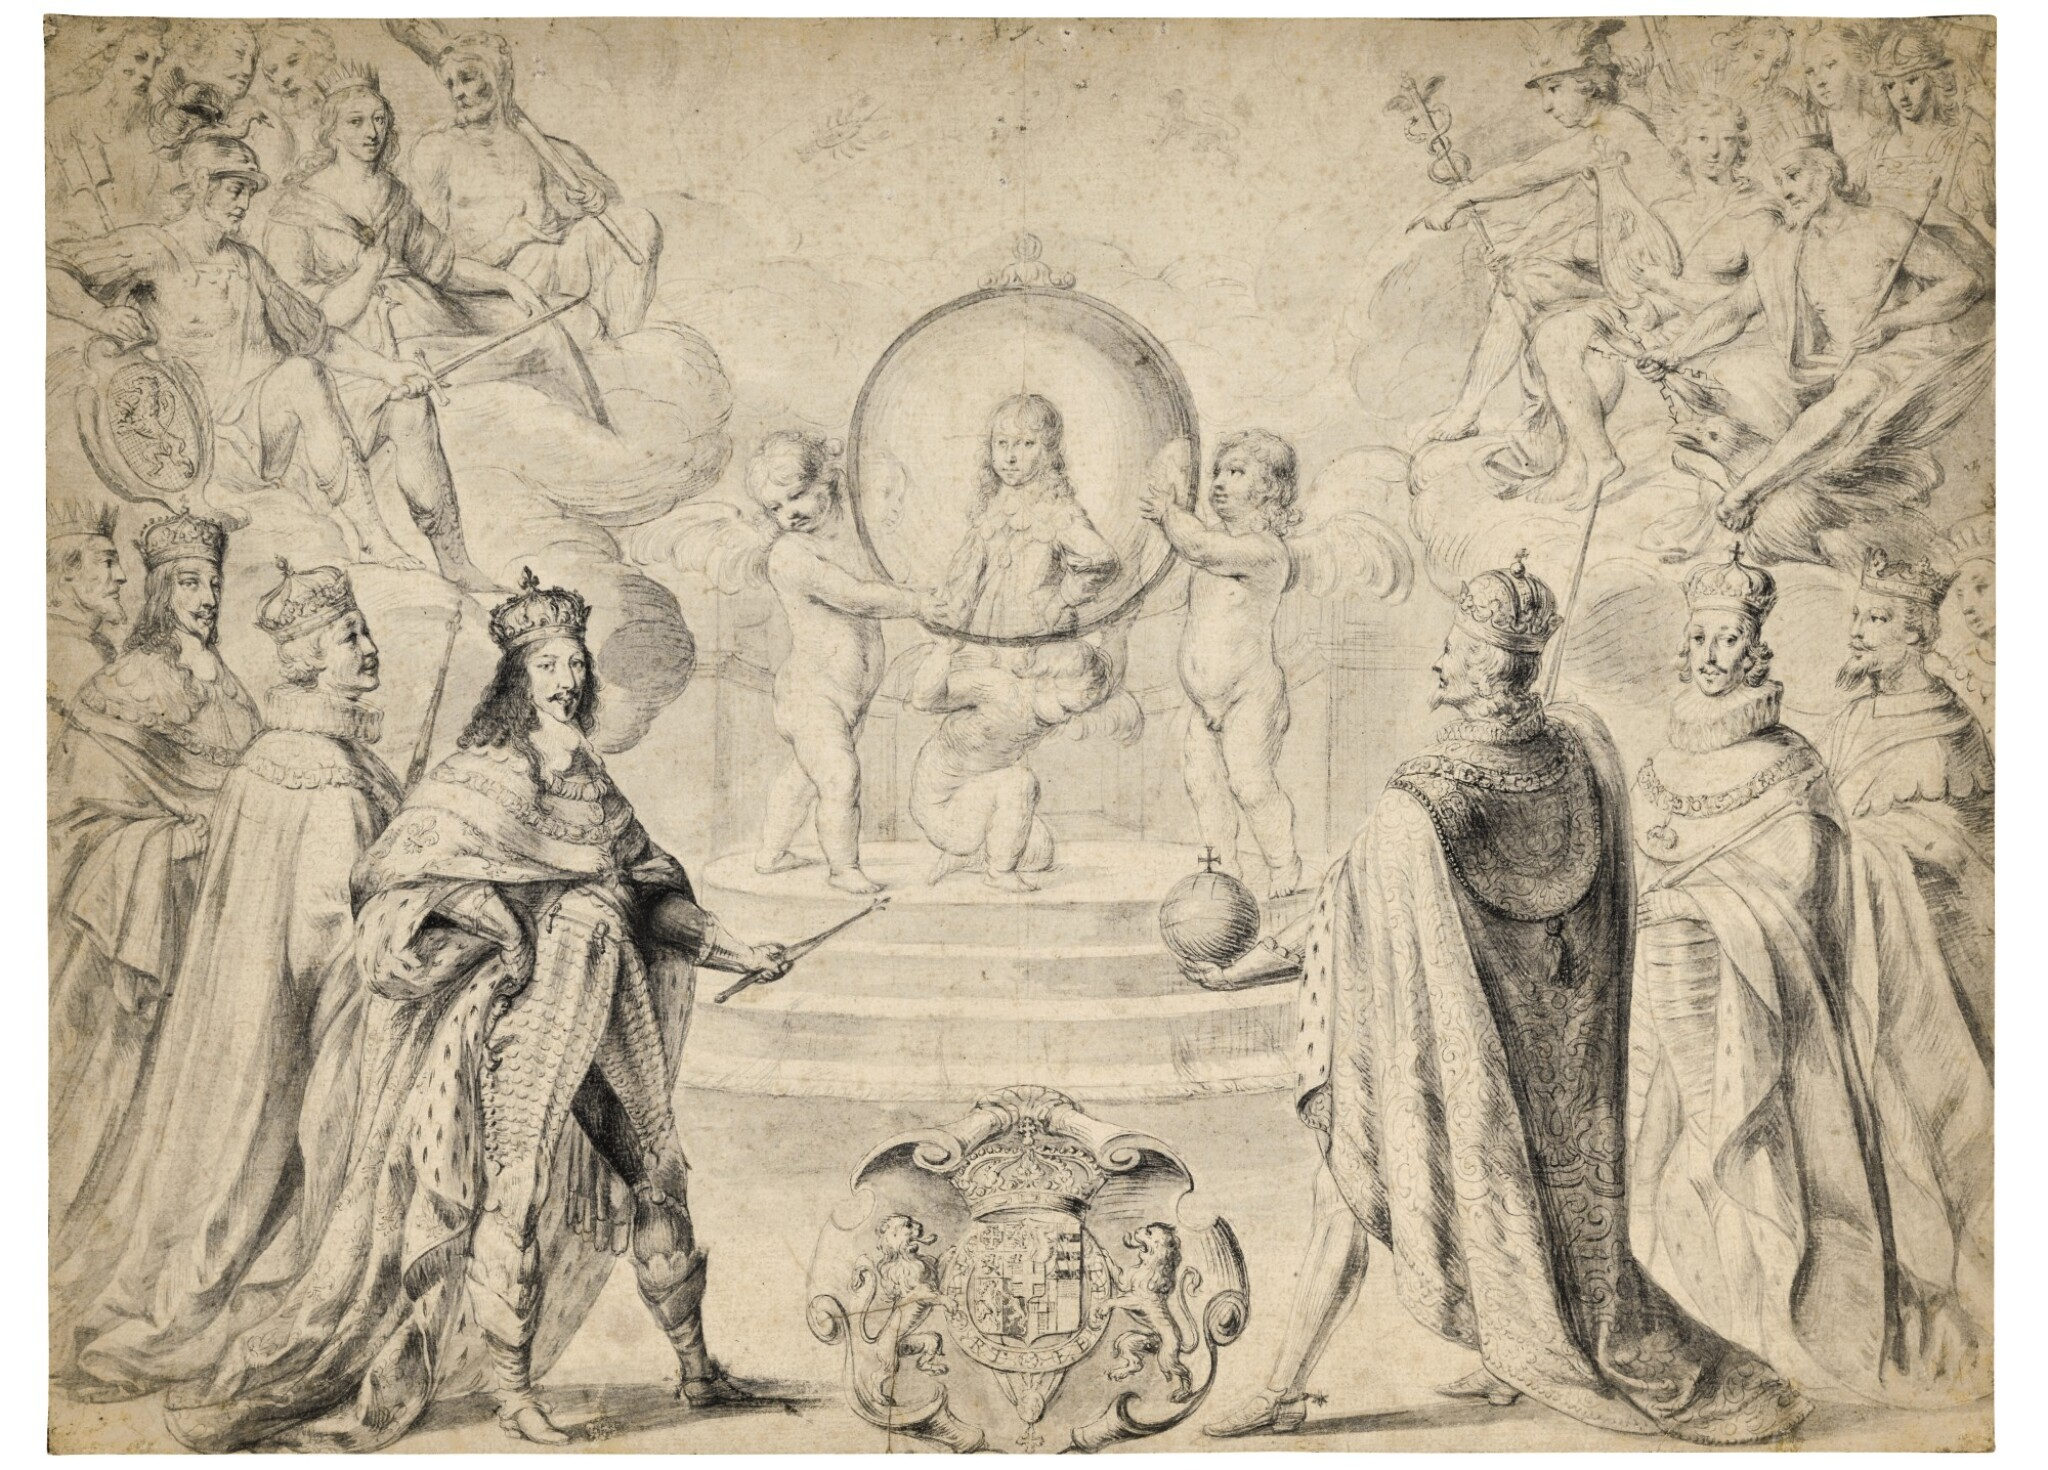 View full screen - View 1 of Lot 28. Allegorical scene of Monarchs, including Louis XIII of France, celebrating the accession to the Duchy of Savoy of Charles Emmanuel II, Prince of Piedmont, in 1638.